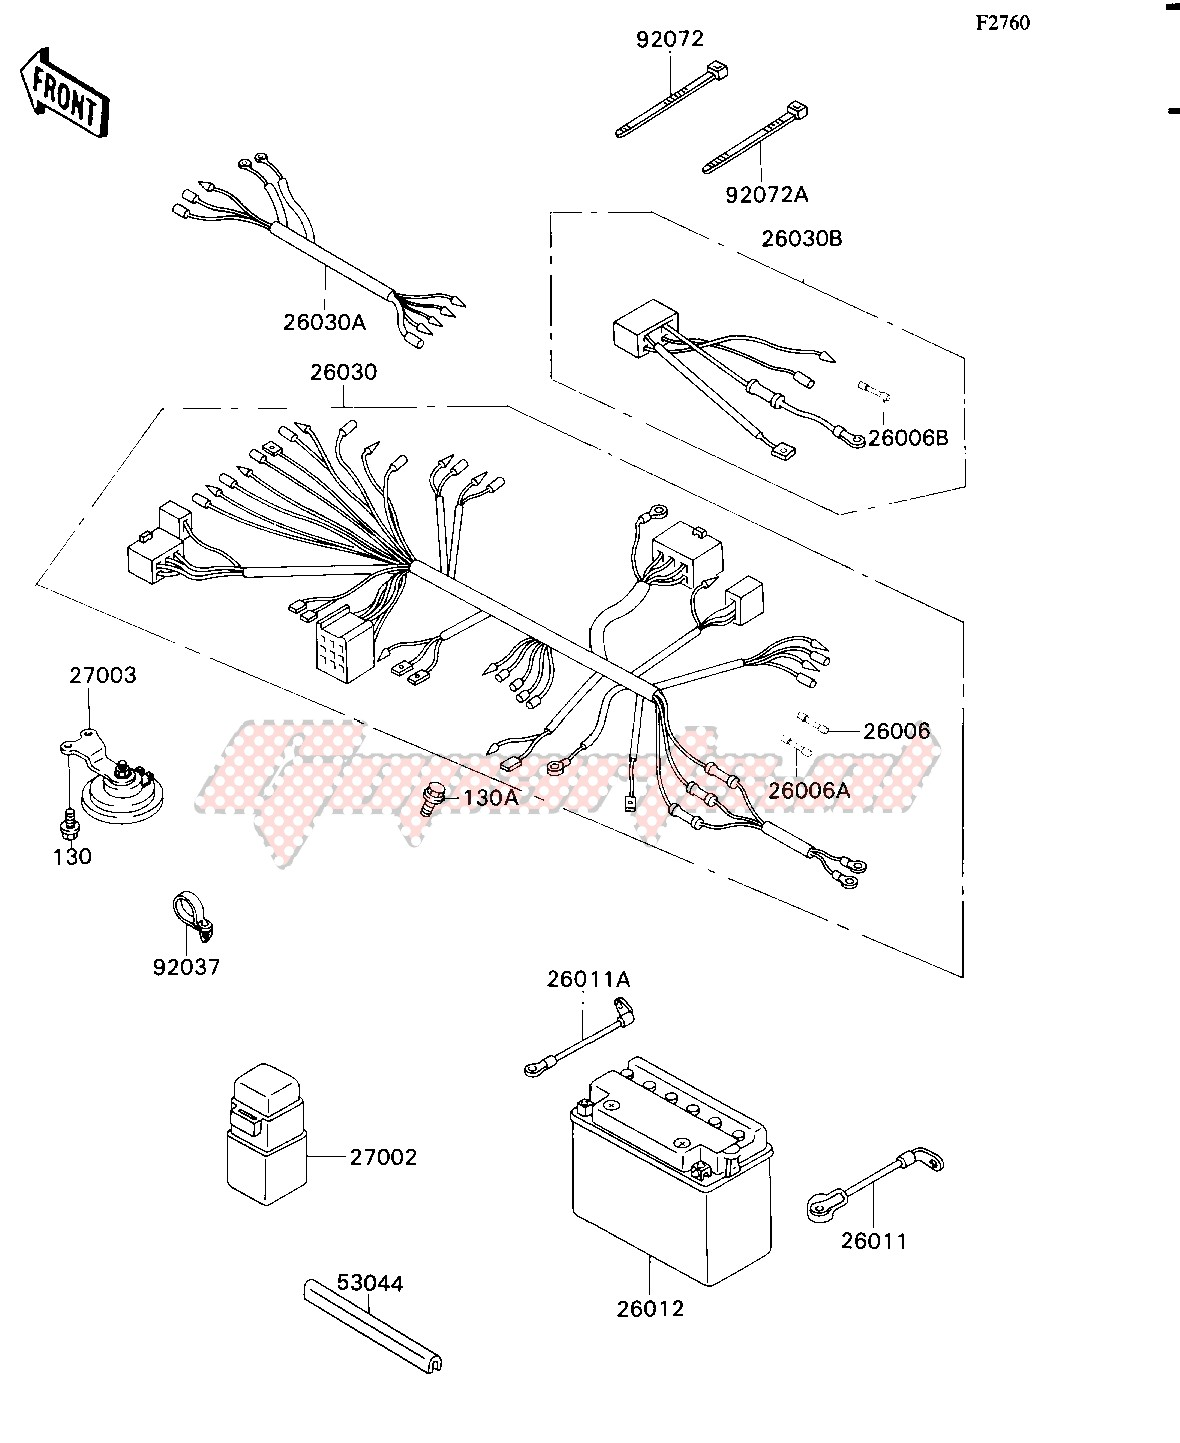 ELECTRICAL EQUIPMENT image